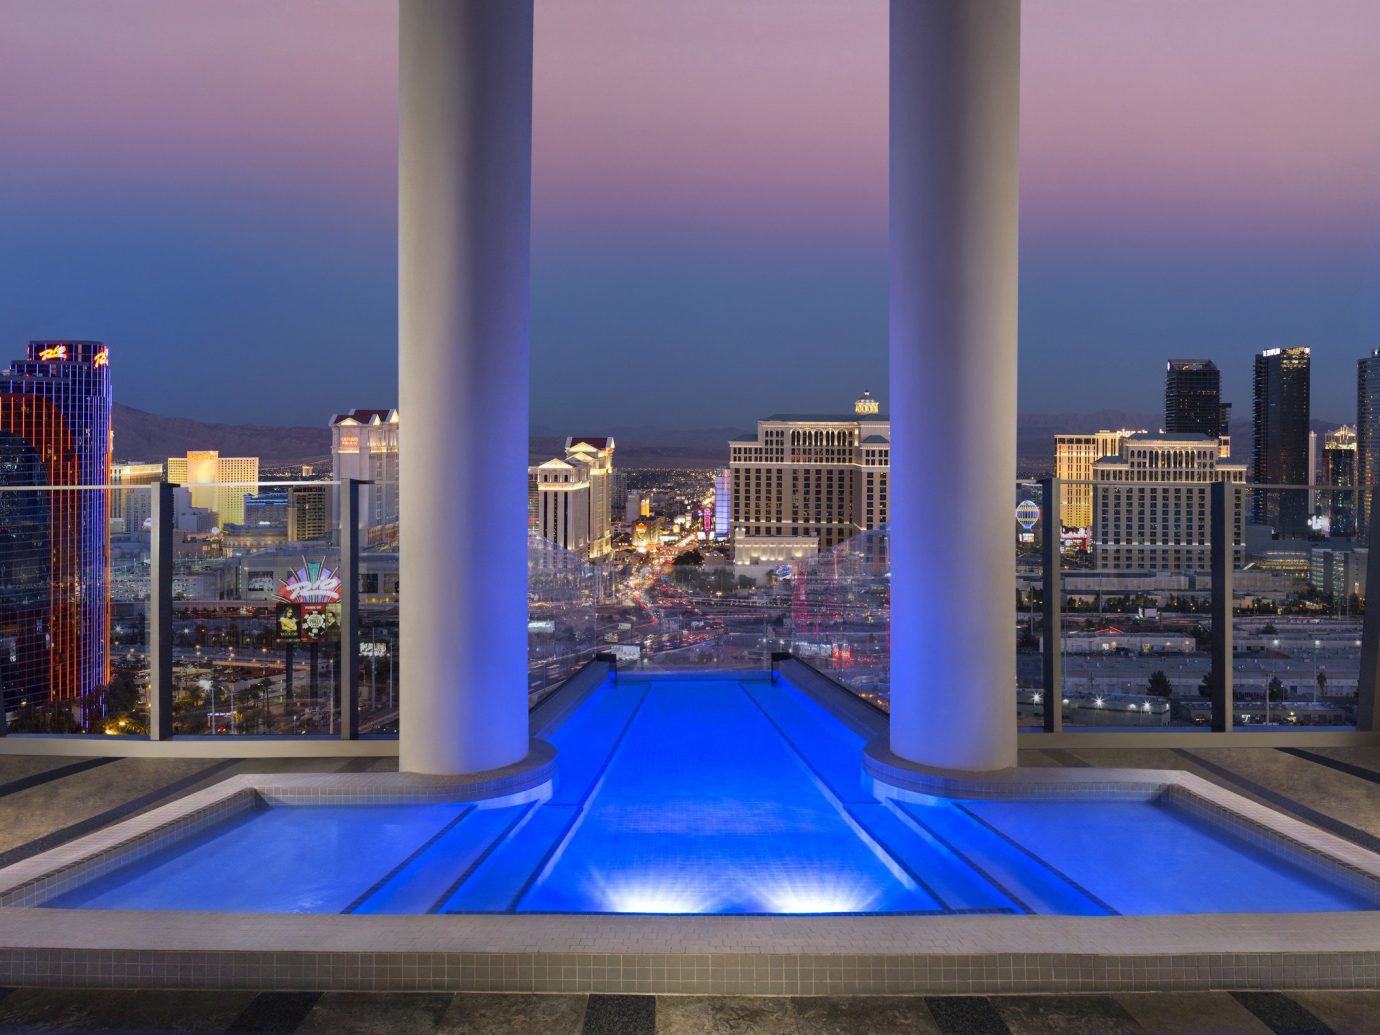 Pool in the Sky Villa, Palms Casino Resort in Las Vegas